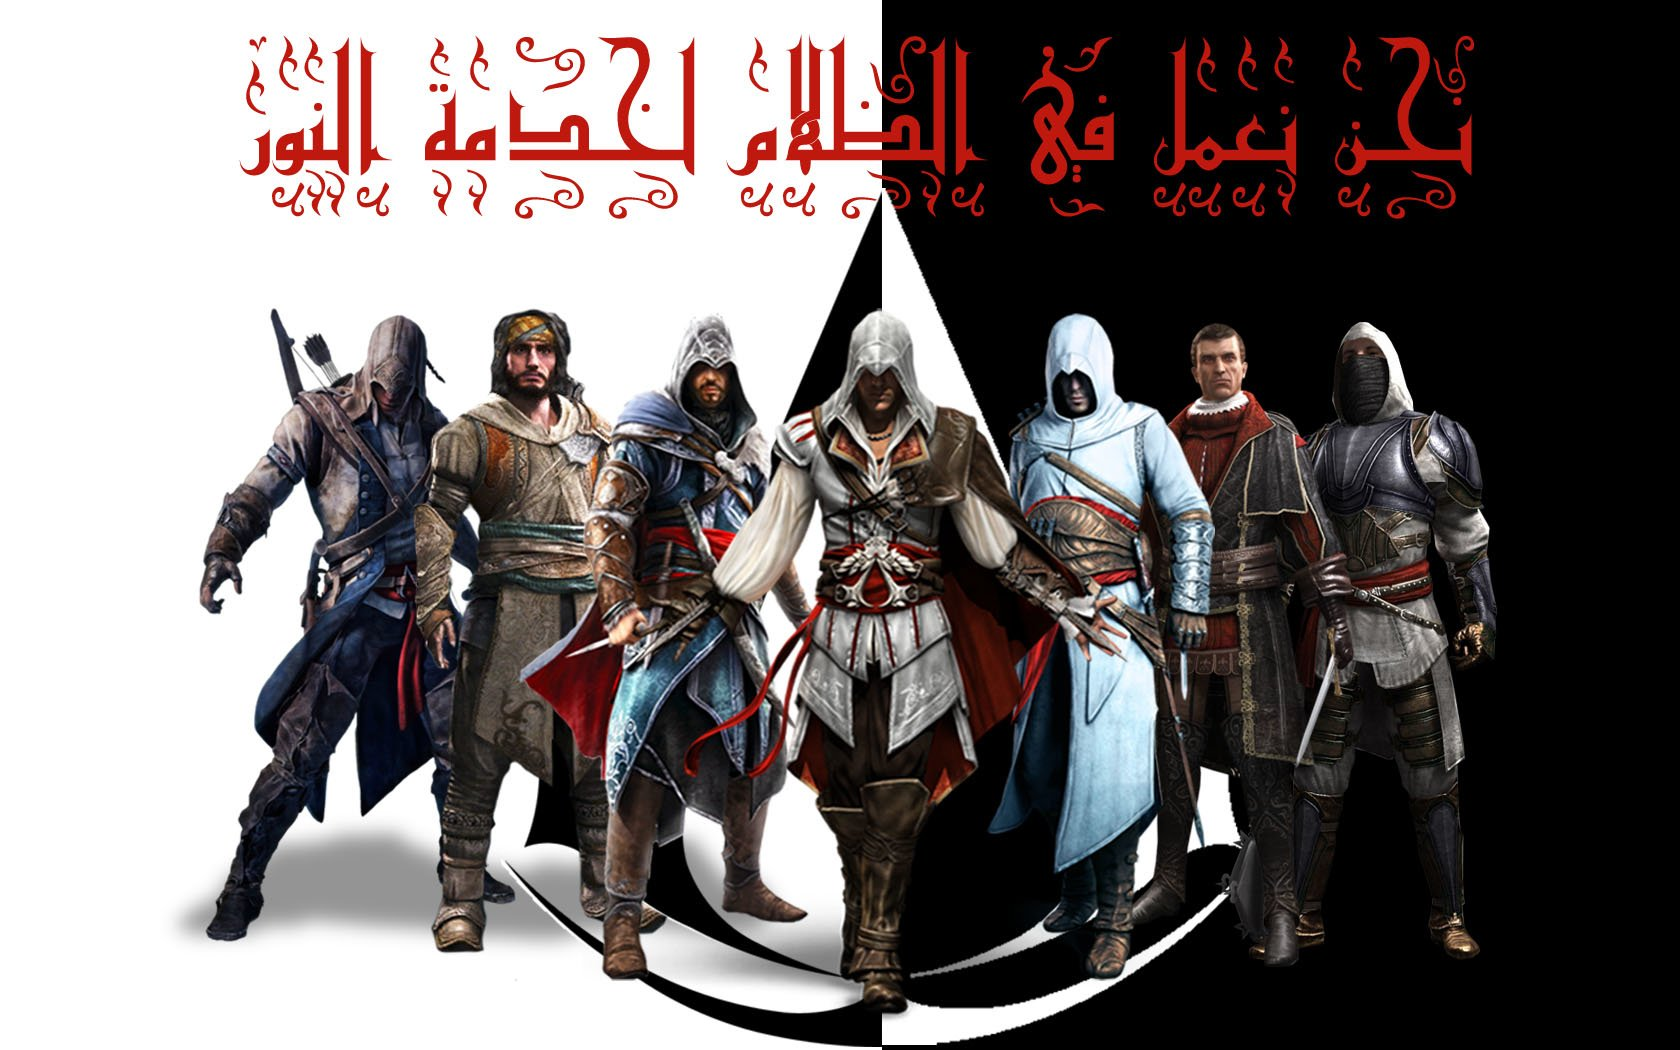 Video Game - Assassin's Creed  Ezio (Assassin's Creed) Altair (Assassin's Creed) Brotherhood Wallpaper